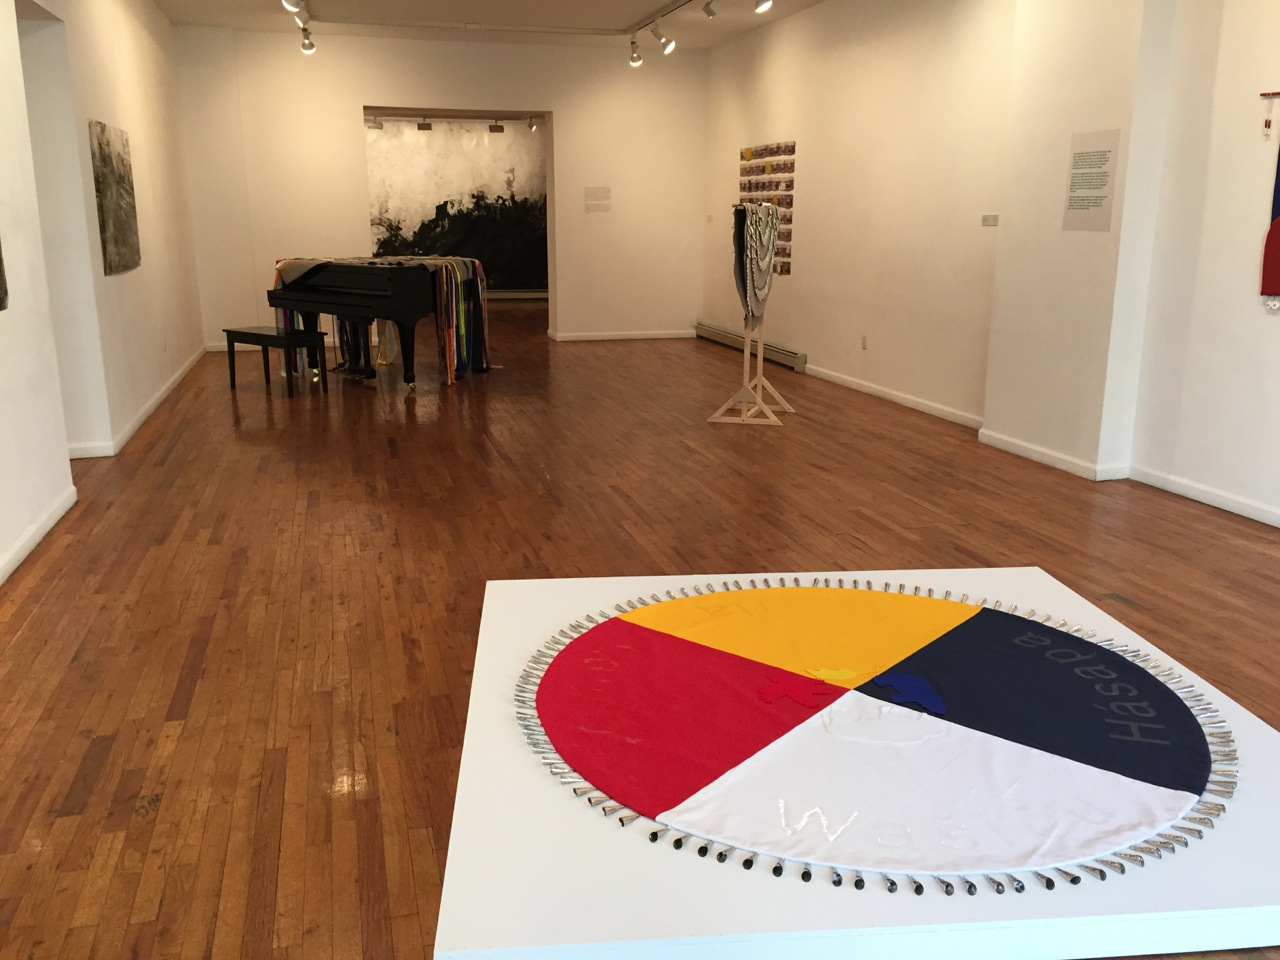 Installation view of 'How to catch eel and grow corn' at Wilmer Jennings Gallery, with a mandala by Maria Hupfield in foreground (all photos by the author for Hyperallergic)